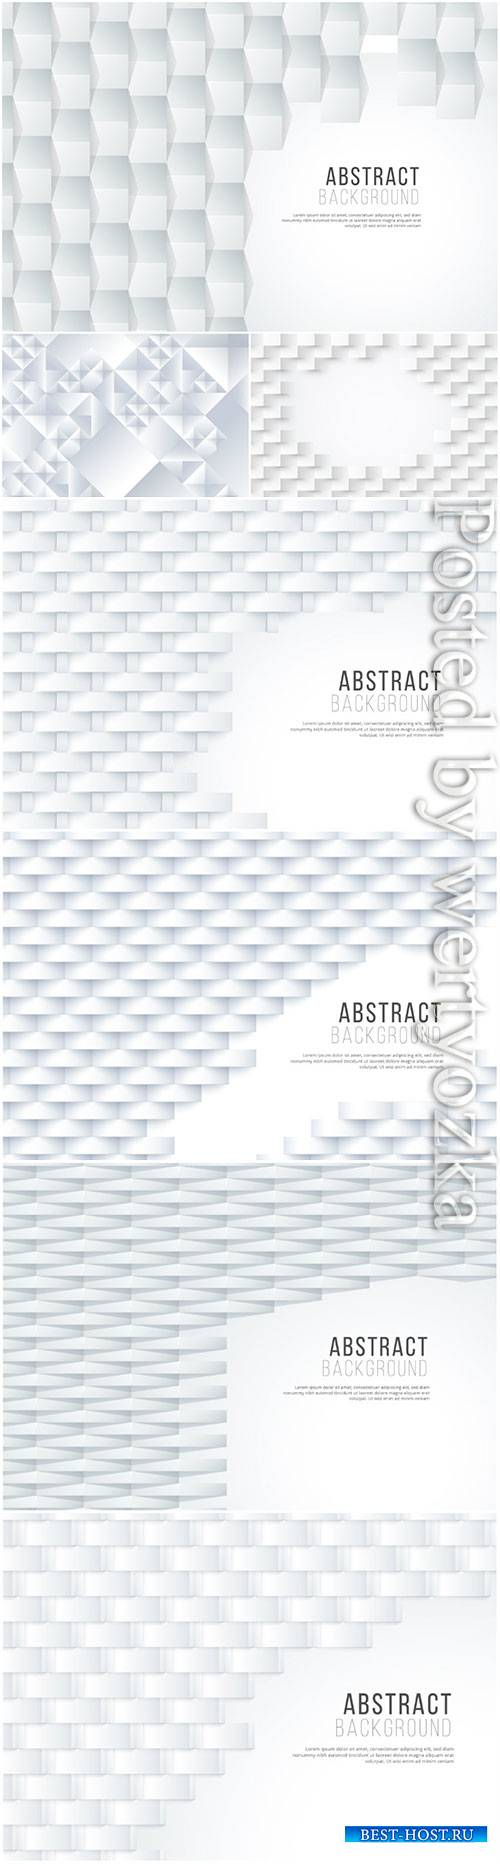 3d vector background with white abstract elements